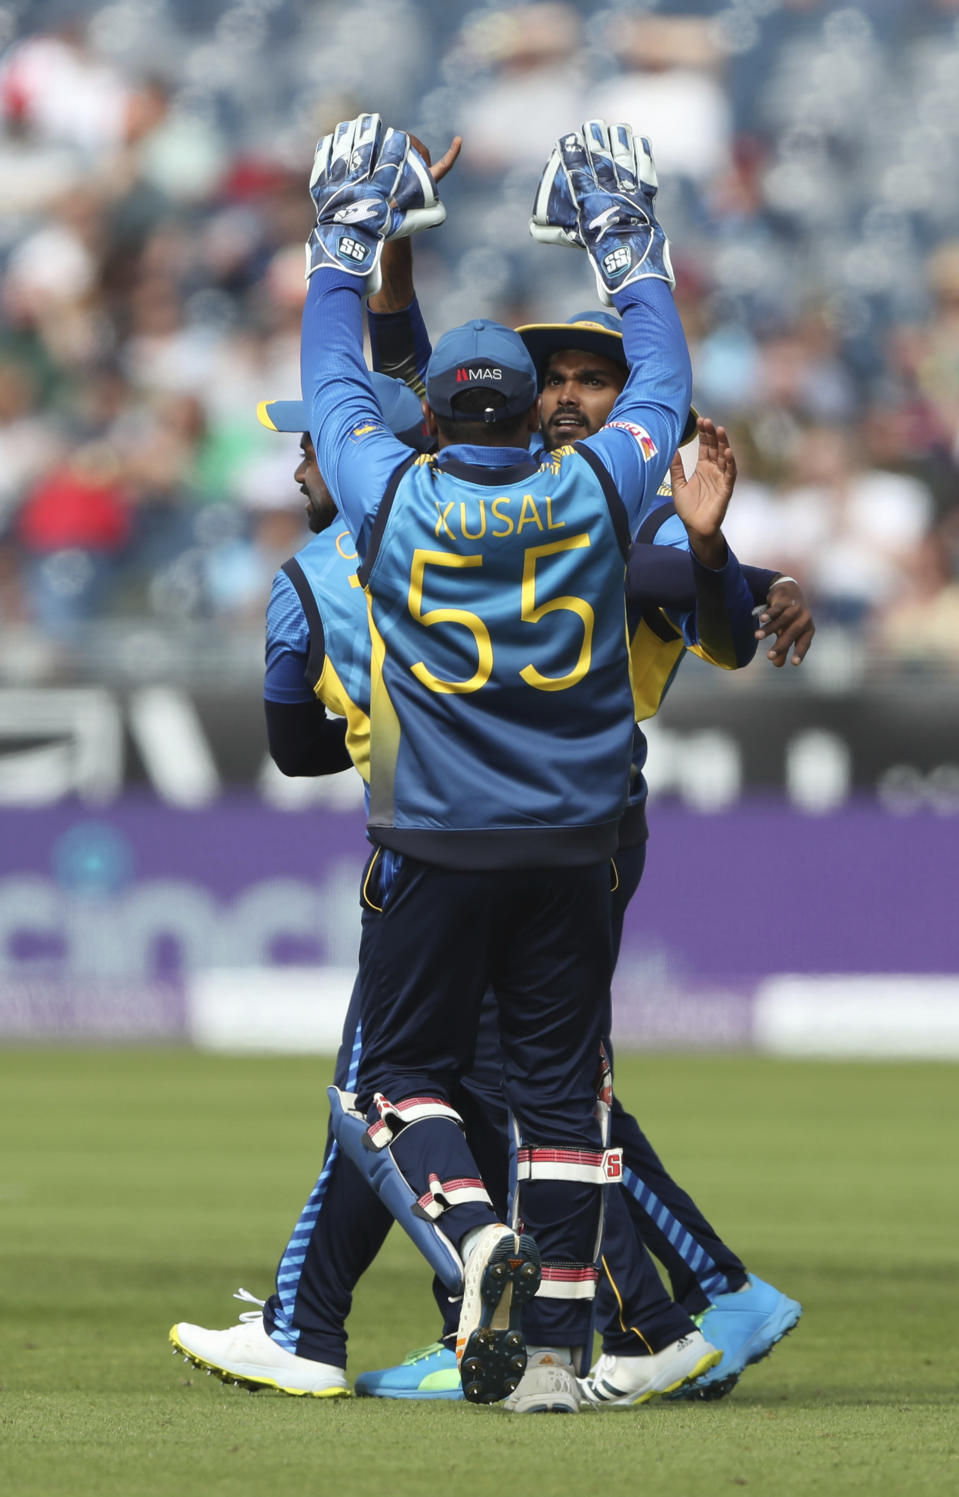 Sri Lankan players celebrate the dismissal of England's Sam Billings during the first one day international cricket match between England and Sri Lanka, in Chester-le-Street, England, Tuesday, June 29, 2021. (AP Photo/Scott Heppell)